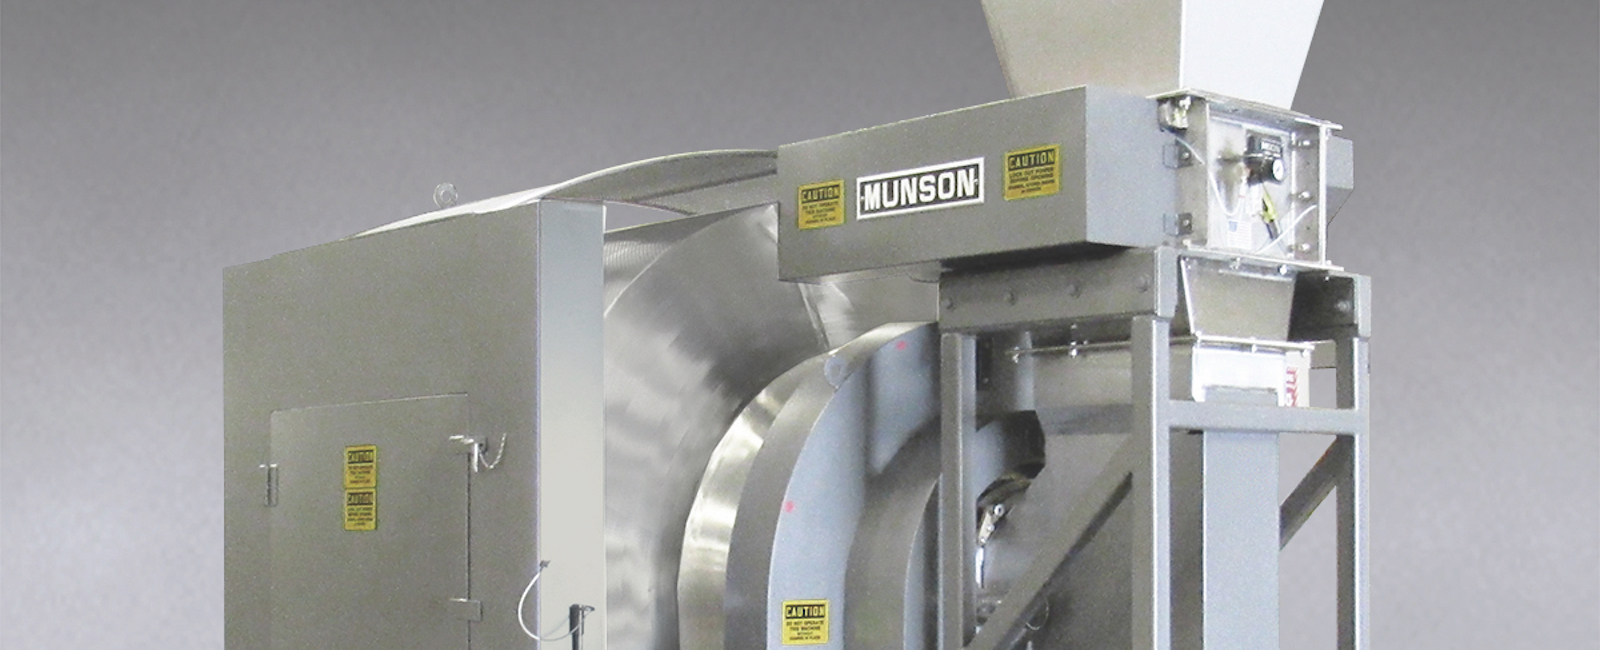 Munson: Rotary Batch Mixer with integral Lump Breaker achieves Uniformity in 1 to 3 Minutes